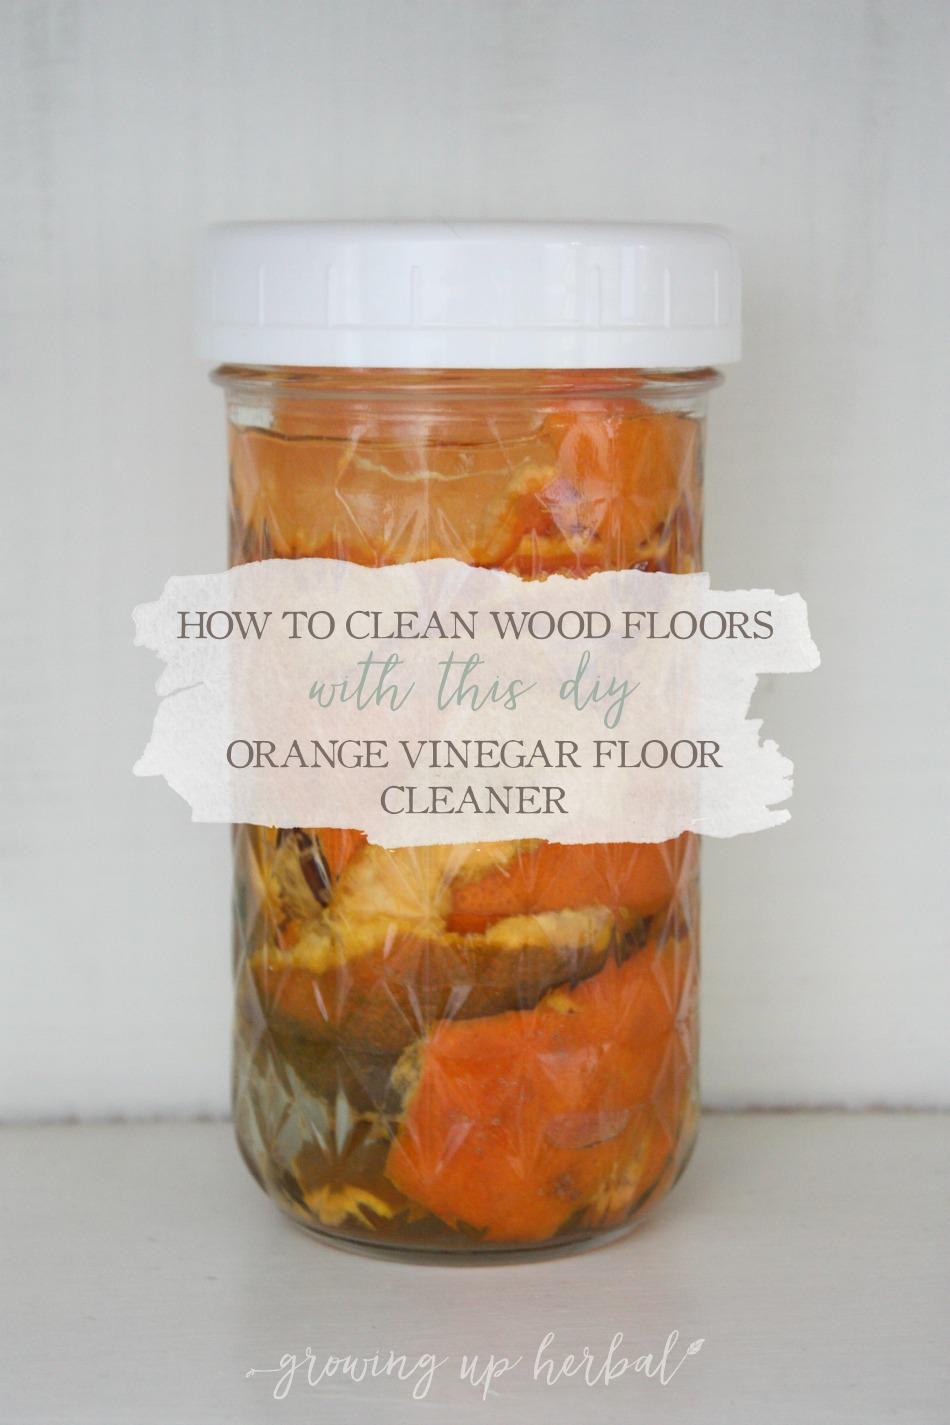 How To Make A Natural Cleaner For Your Floors | Growing Up Herbal | Looking for a natural way to clean your floors? Try this easy natural floor cleaner and see what you think!